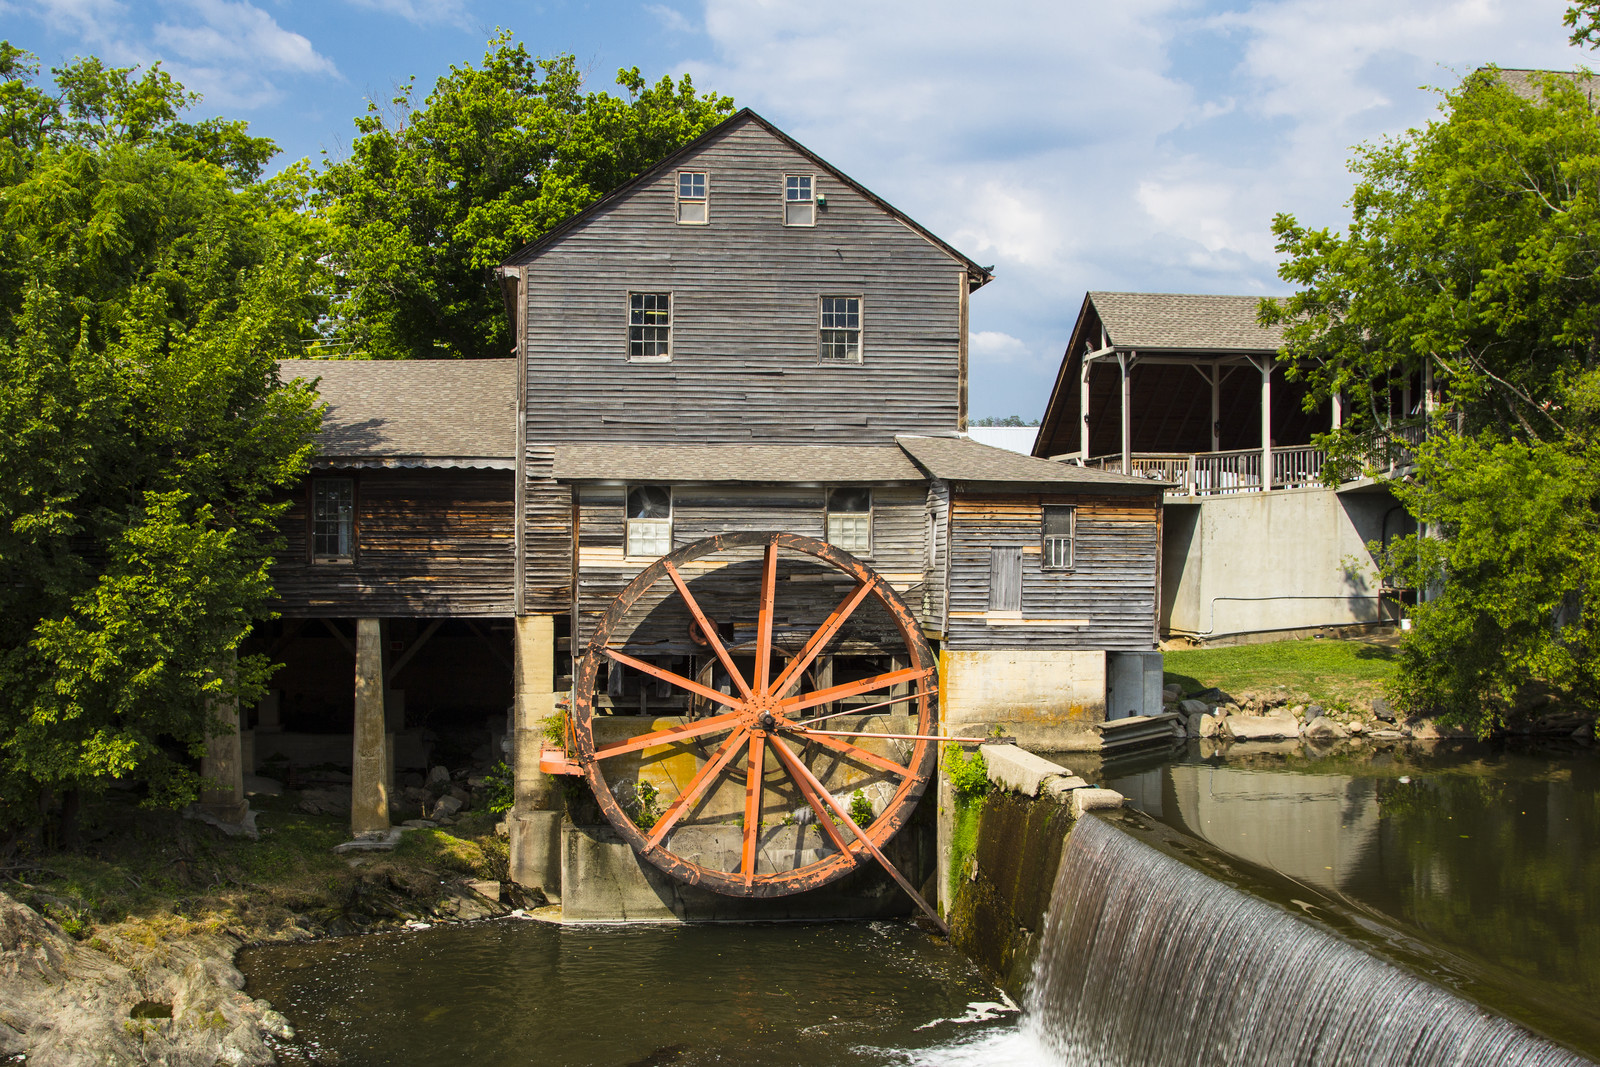 Pigeon Forge Mill with water wheel on the river with trees lining the river